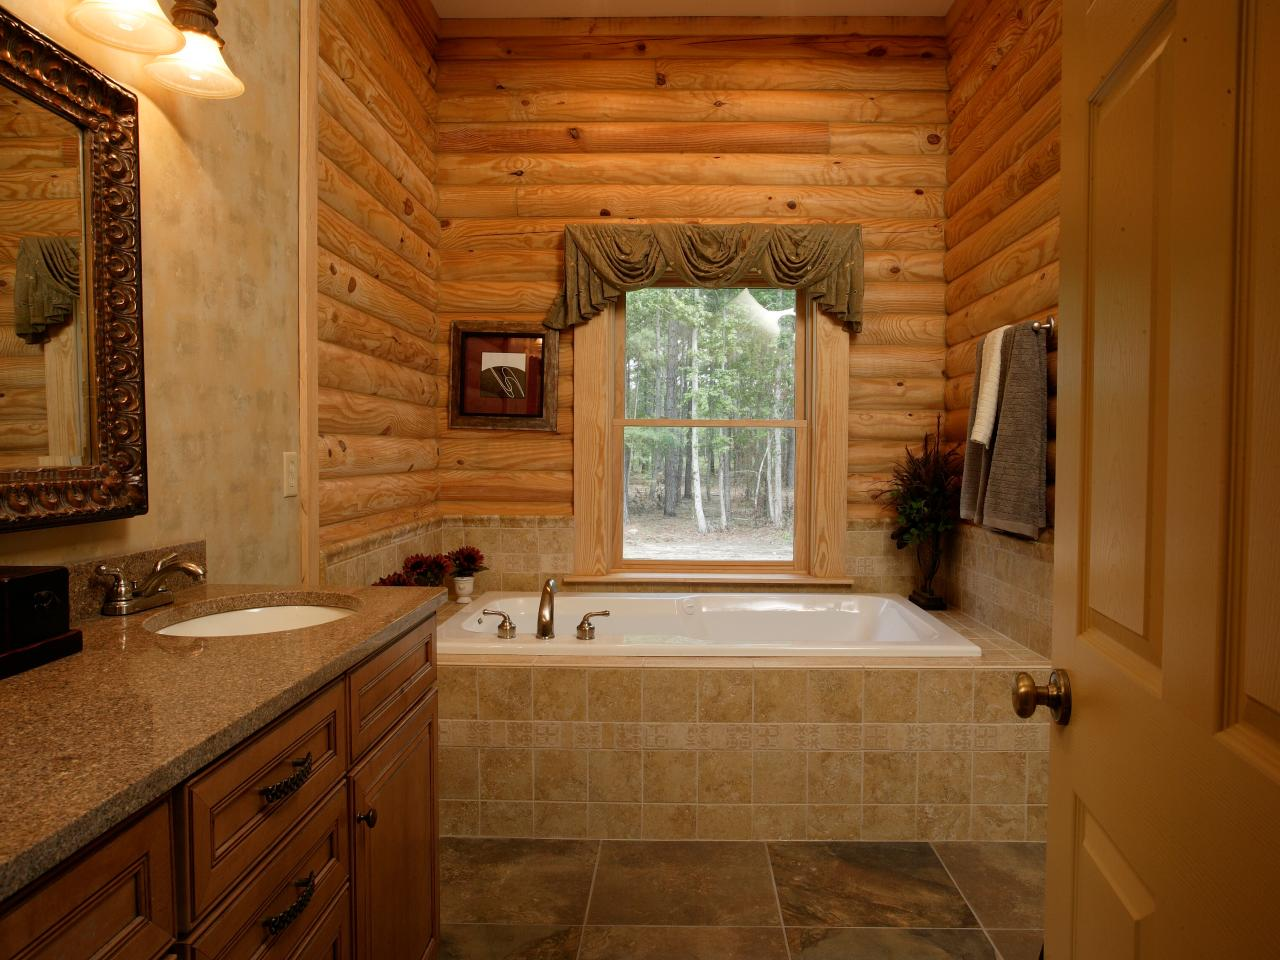 Unique Challenges. Cabin Bathroom